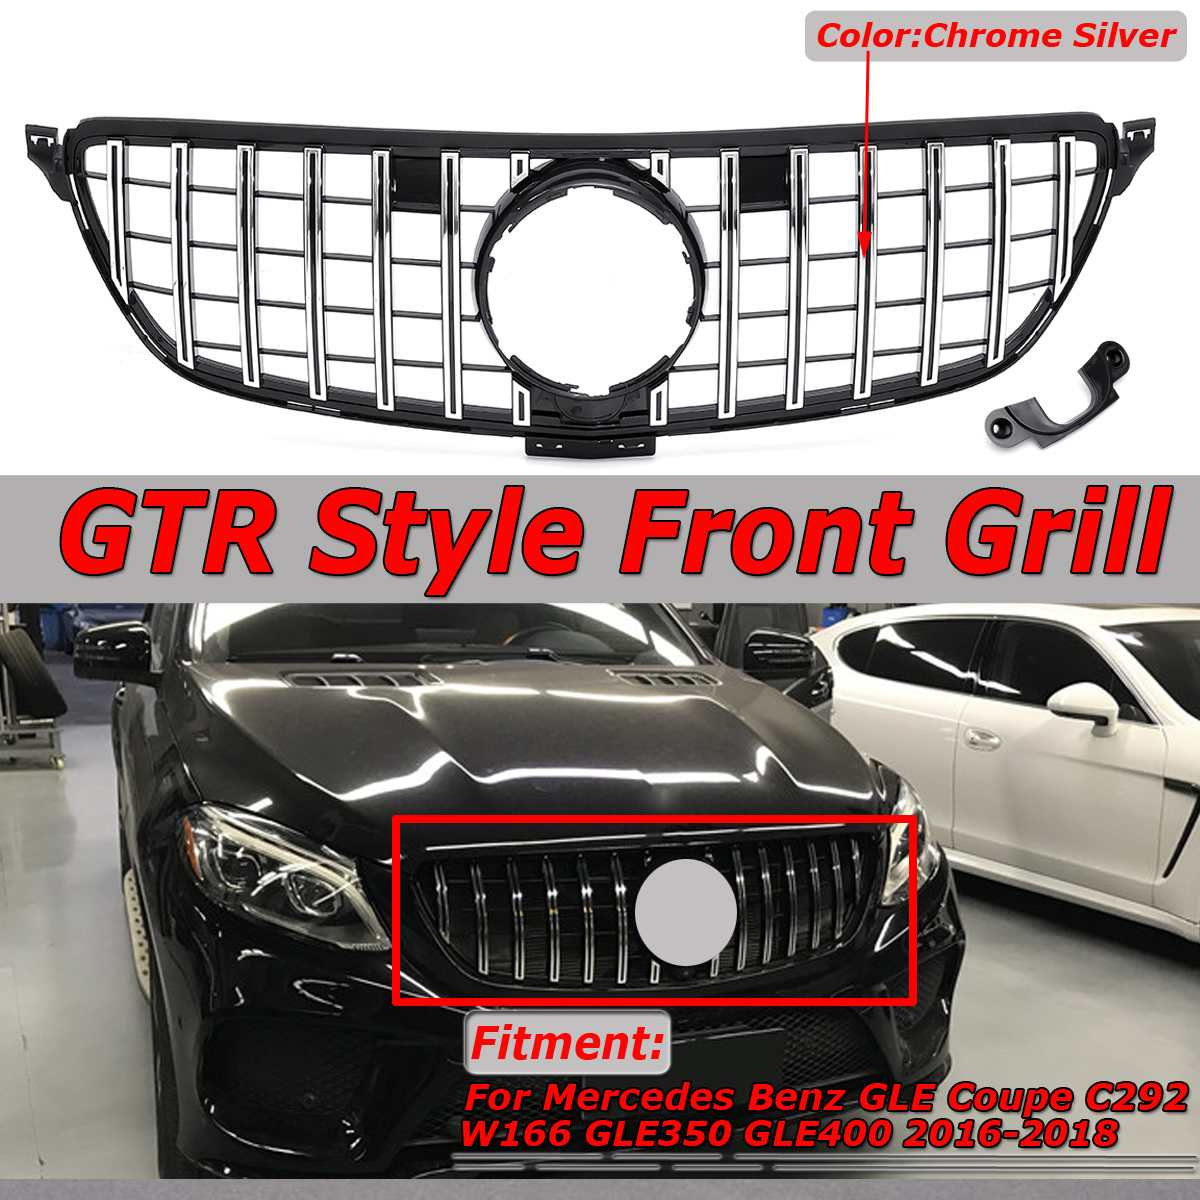 New GTR GT R Style Car Front Grill Grille For Mercedes For Benz GLE Coupe W292